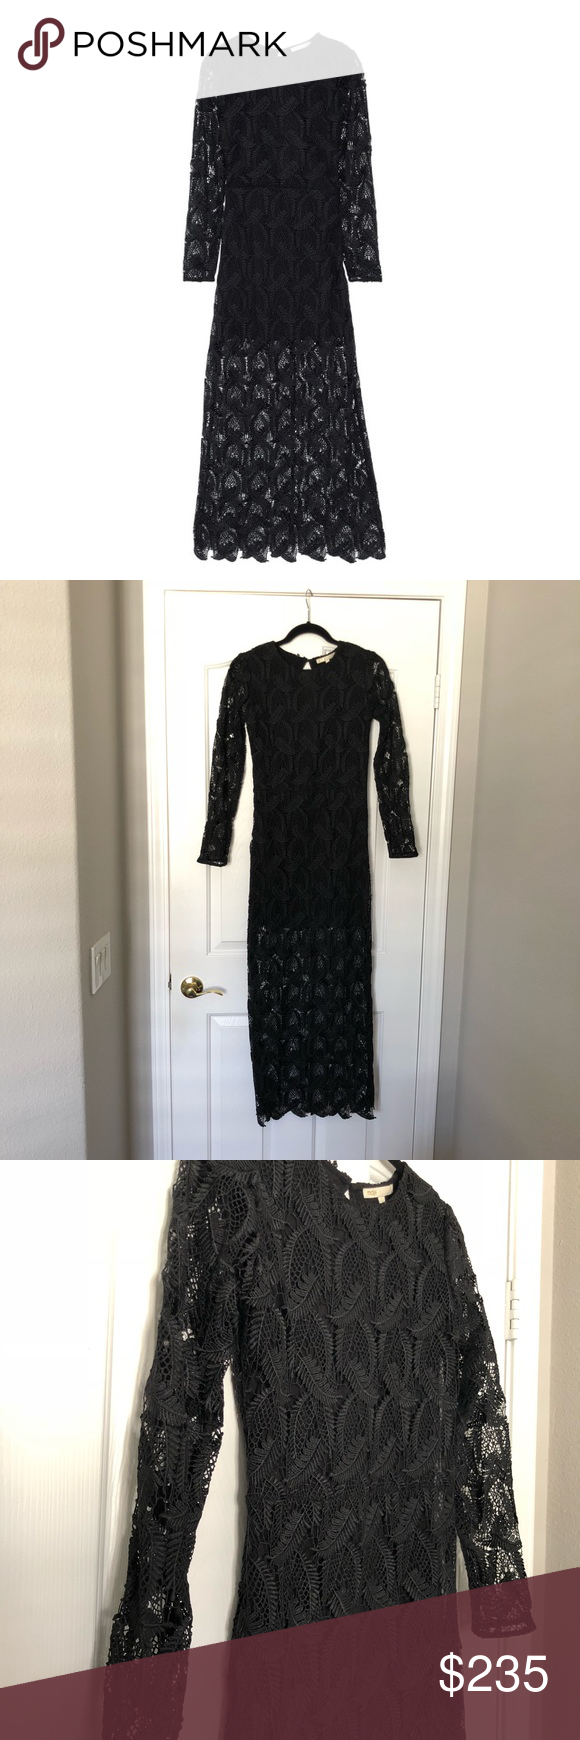 b9282497c4 Maje Cutout Guipure Lace Maxi Dress Size 1 -Size 1 -Guipure Lace -Concealed  Zip Fastening on one side -Button fastening keyhole in back -Scalloped Hem  ...